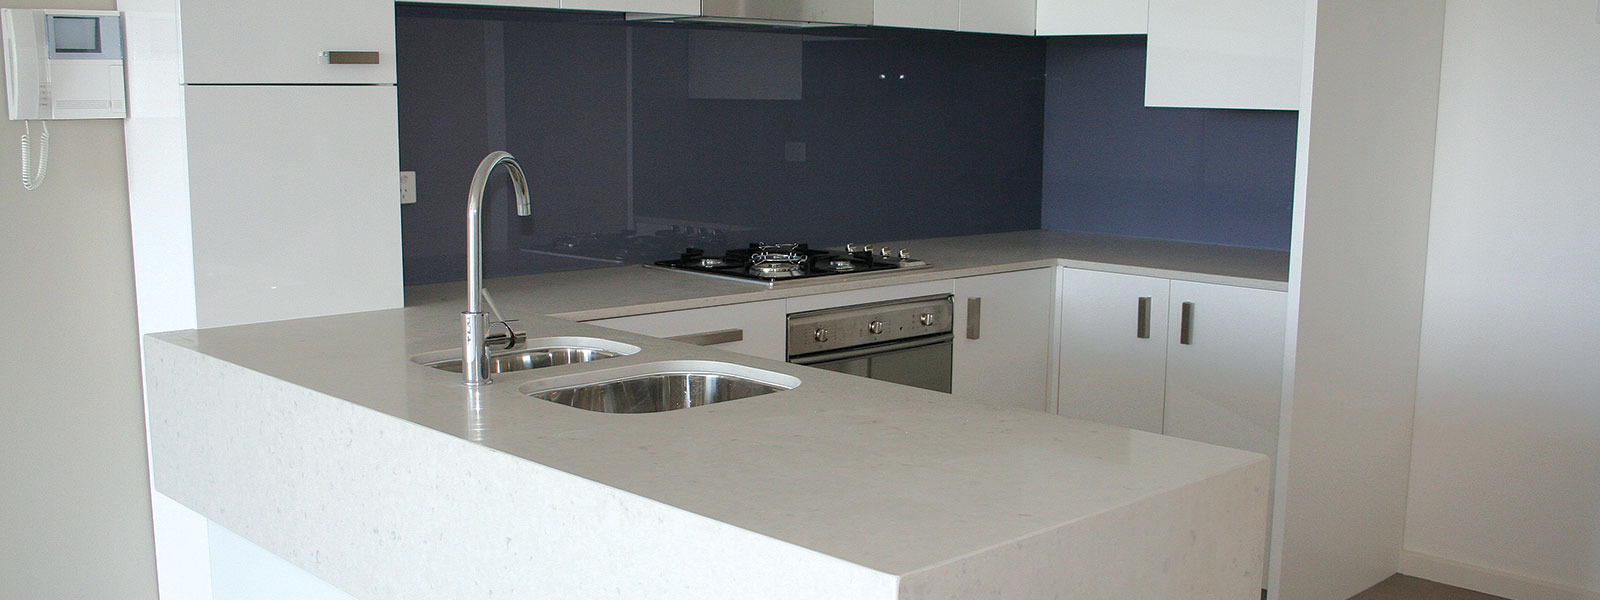 Kitchen Benchtops Perth | Granite, Marble, & Stone ...